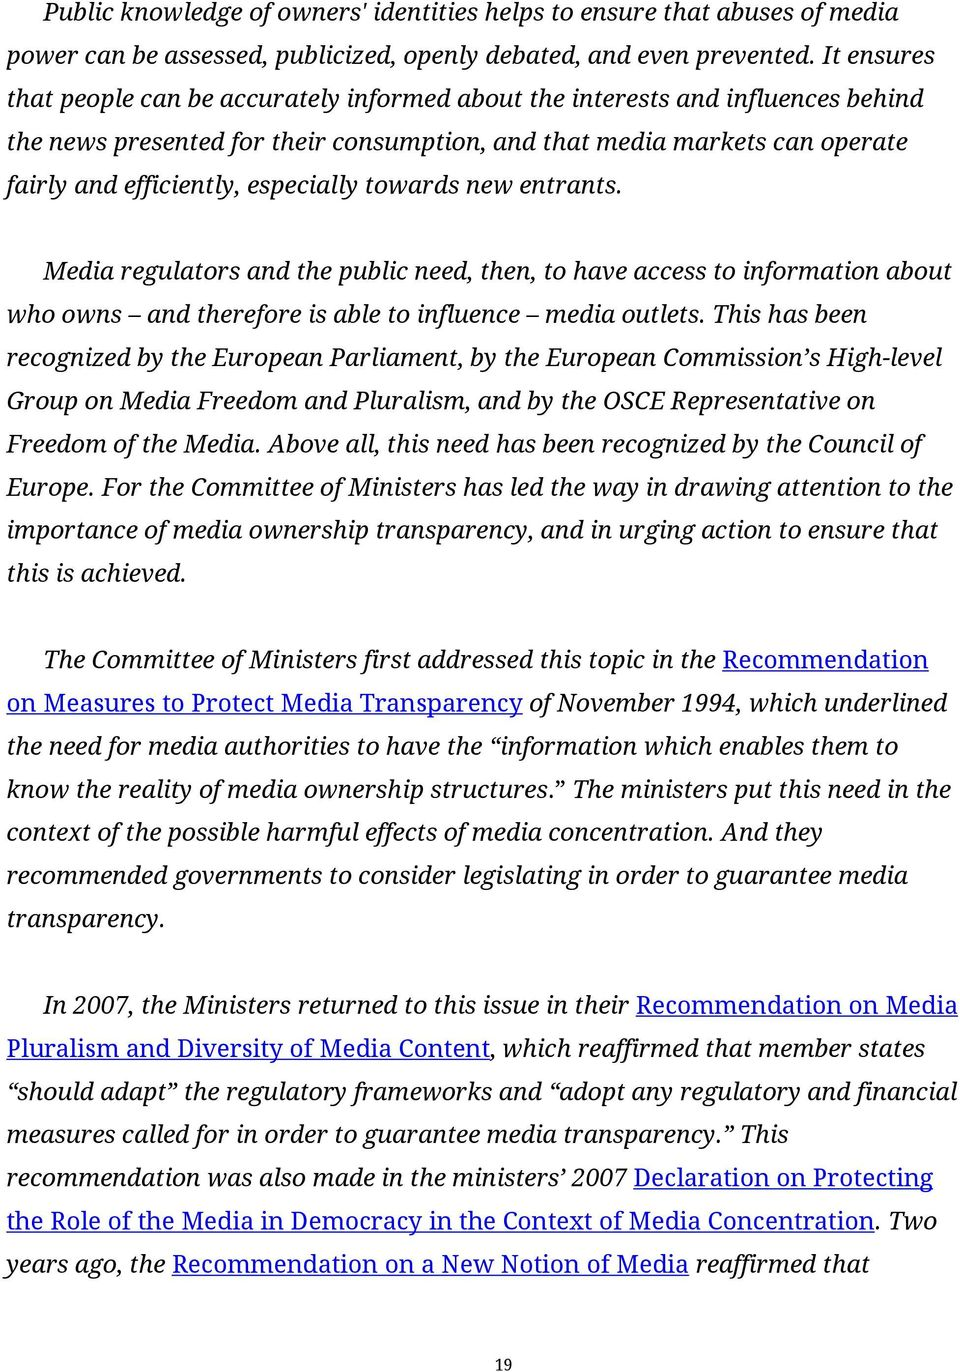 especially towards new entrants. Media regulators and the public need, then, to have access to information about who owns and therefore is able to influence media outlets.